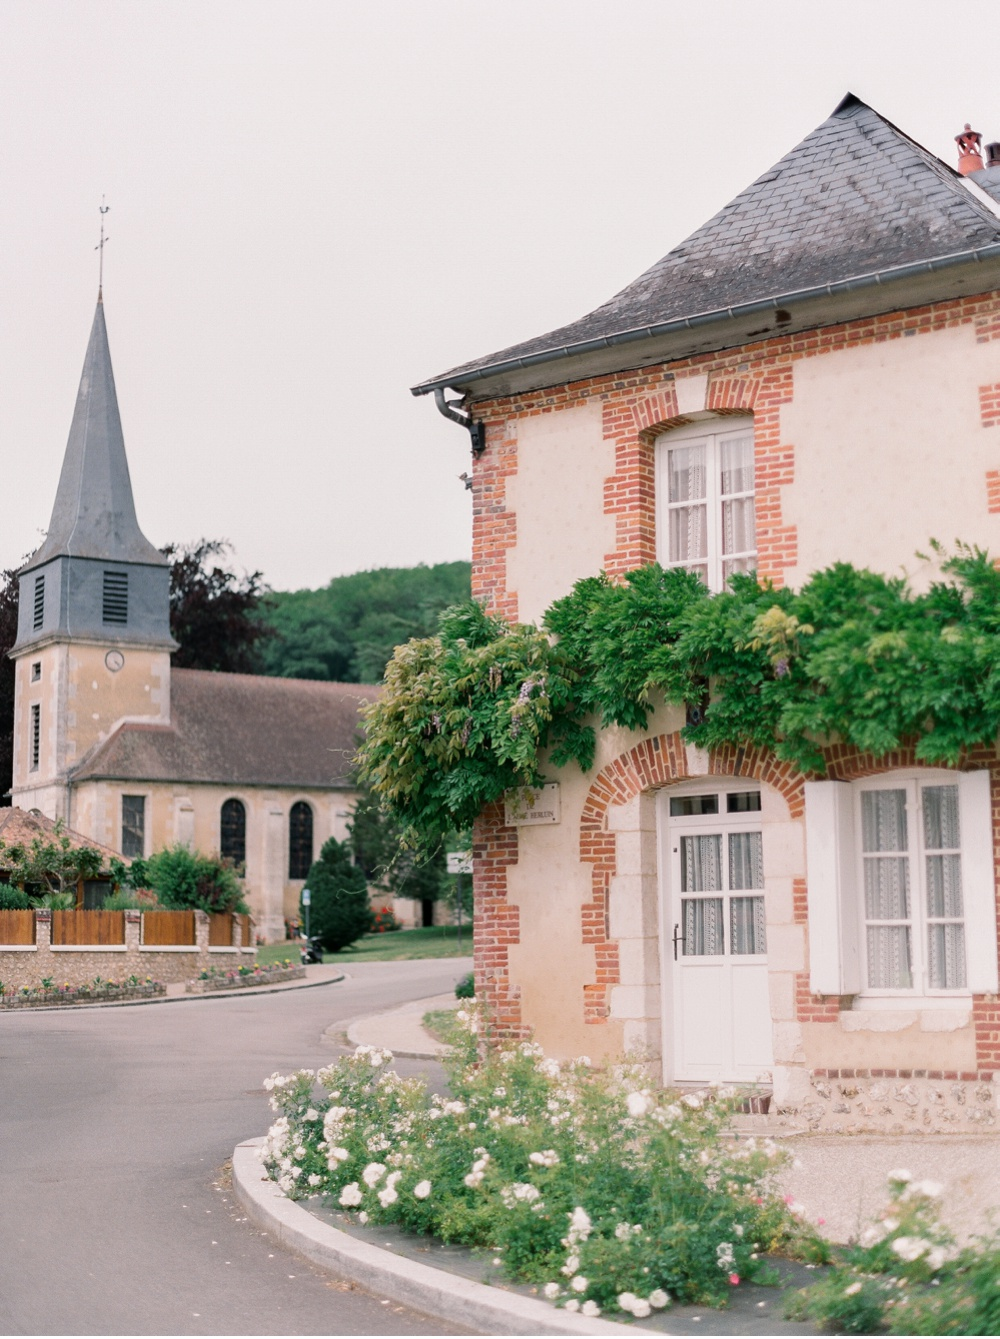 Destination_Wedding_Photographer_France©MadalinaSheldon_0010.jpg